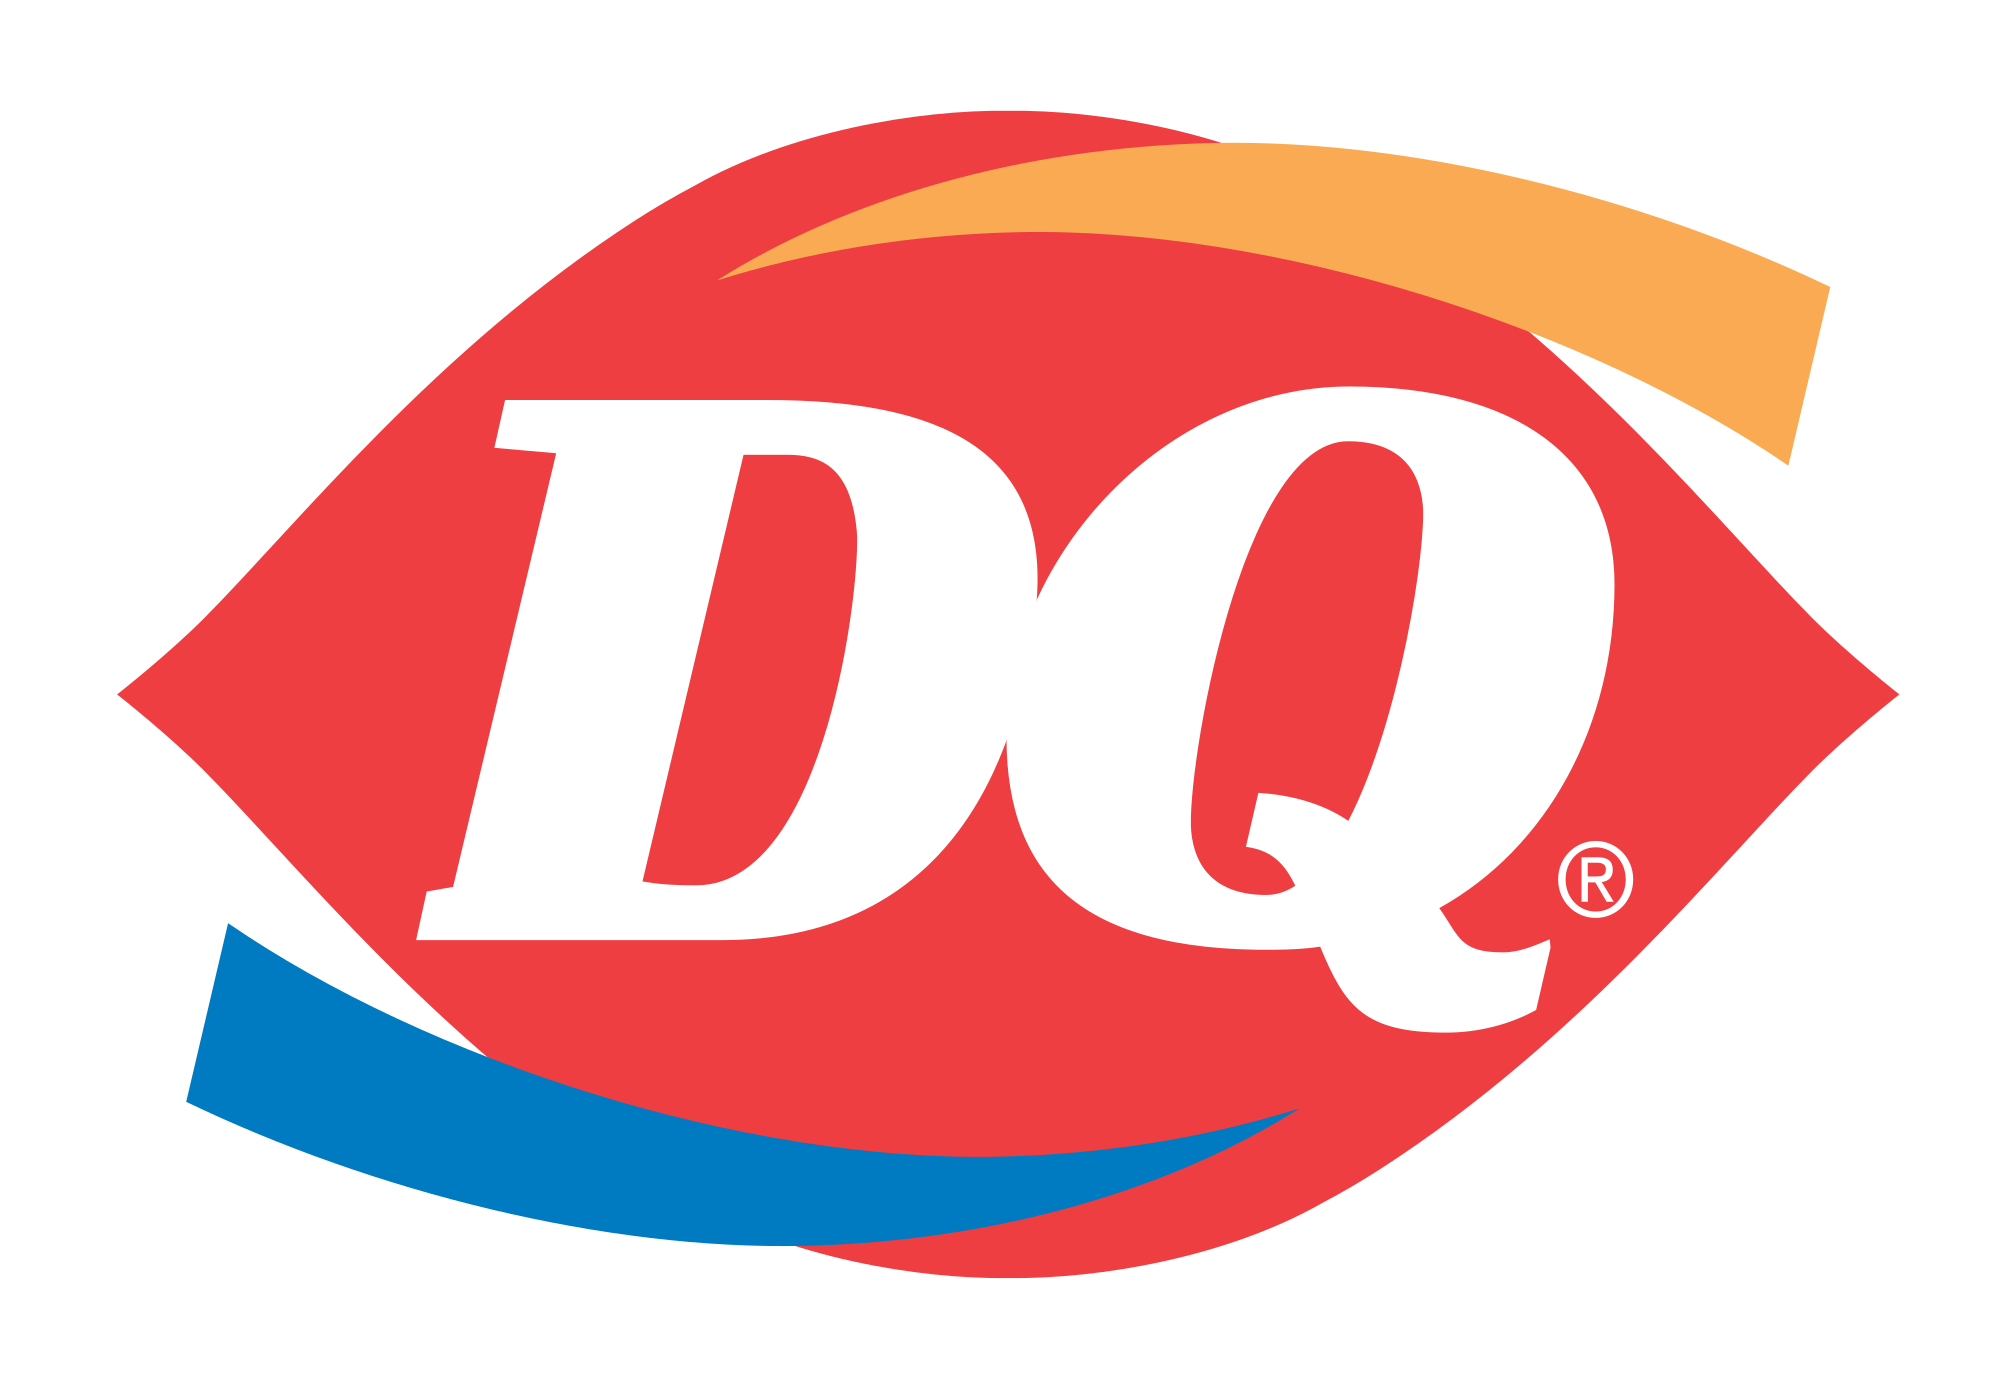 Dairy Queen - Discount: 10% offStore Location: 304 Stone Rd W (#DQonStone)